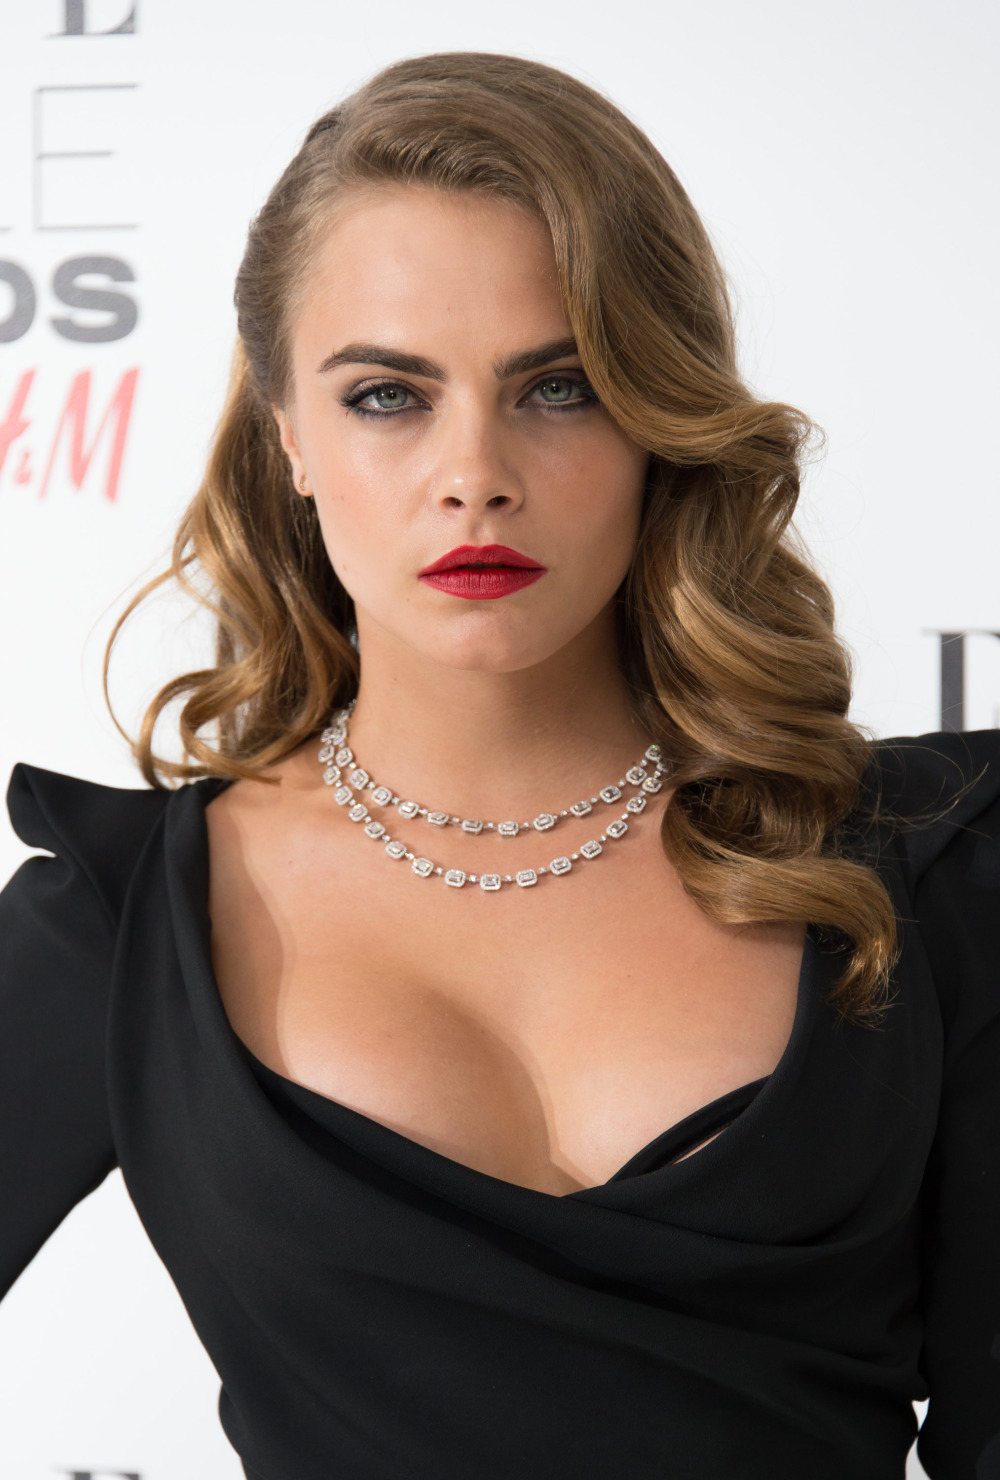 Shucky Ducky Cara Delevingne Taylor Network Of Podcasts